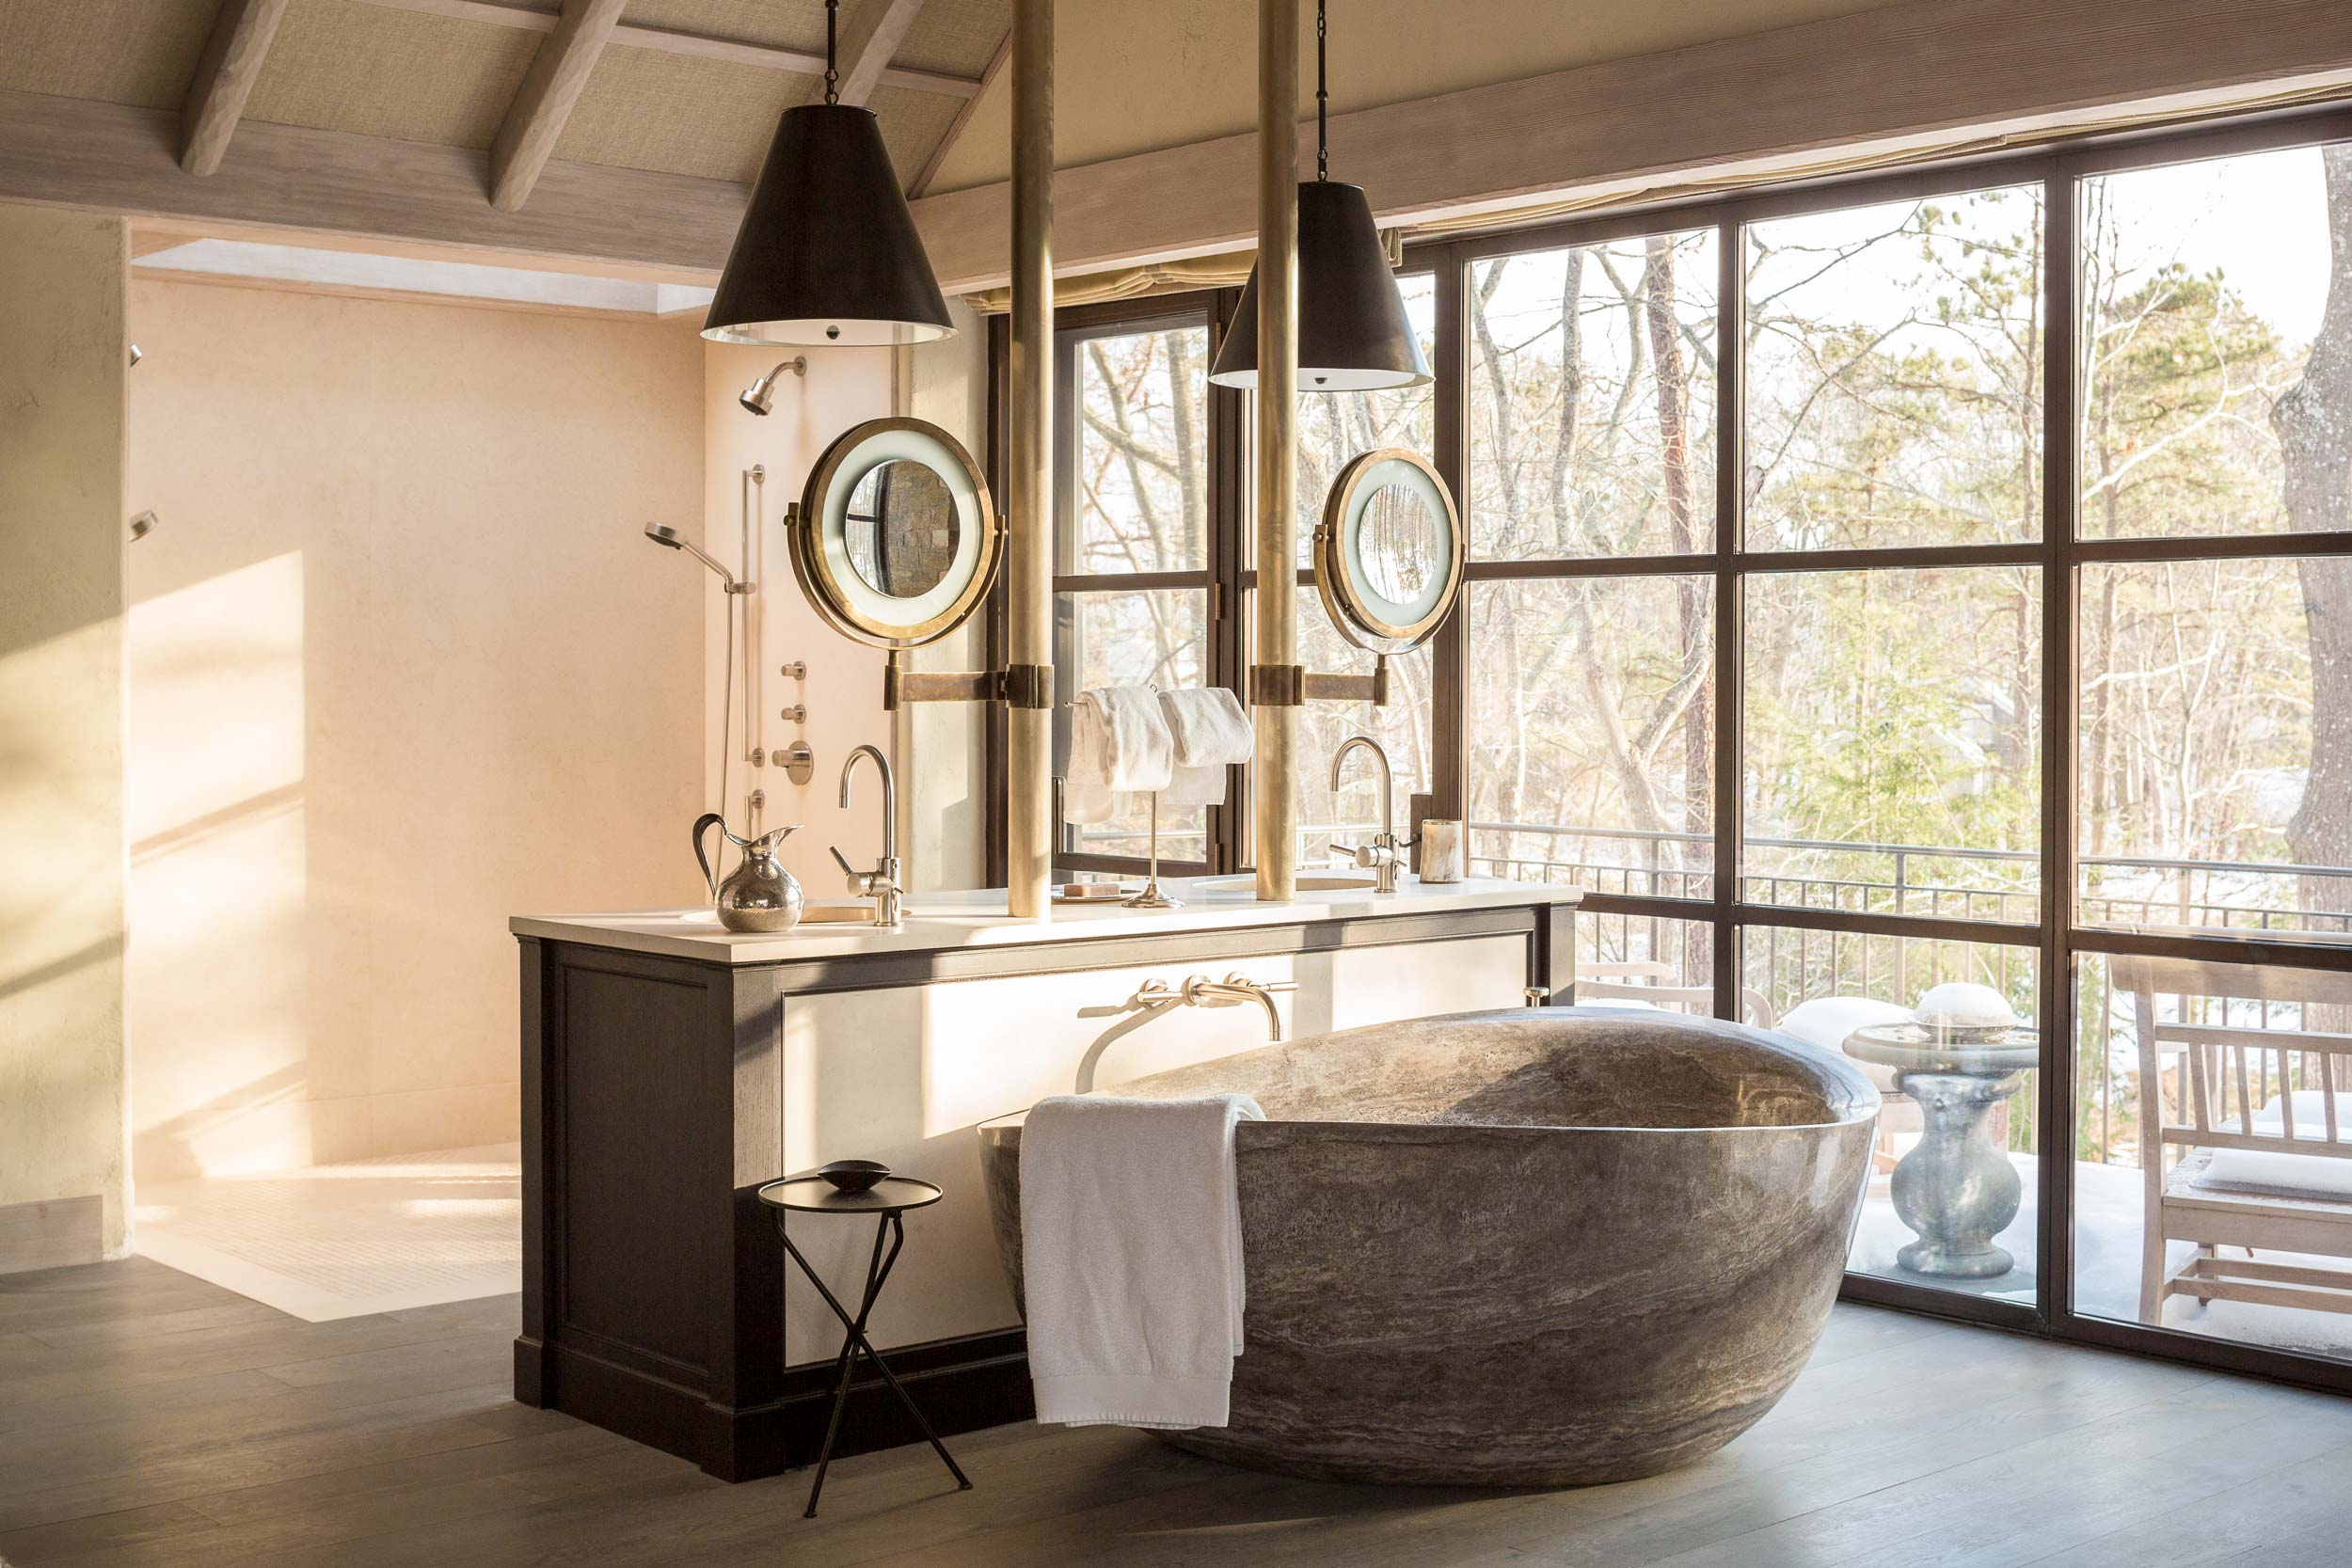 """Installation of the master bathroom tub required intricate planning and the use of a crane. """"It is as much an art piece as a place to soothe my body and soul,"""" Jennifer says."""